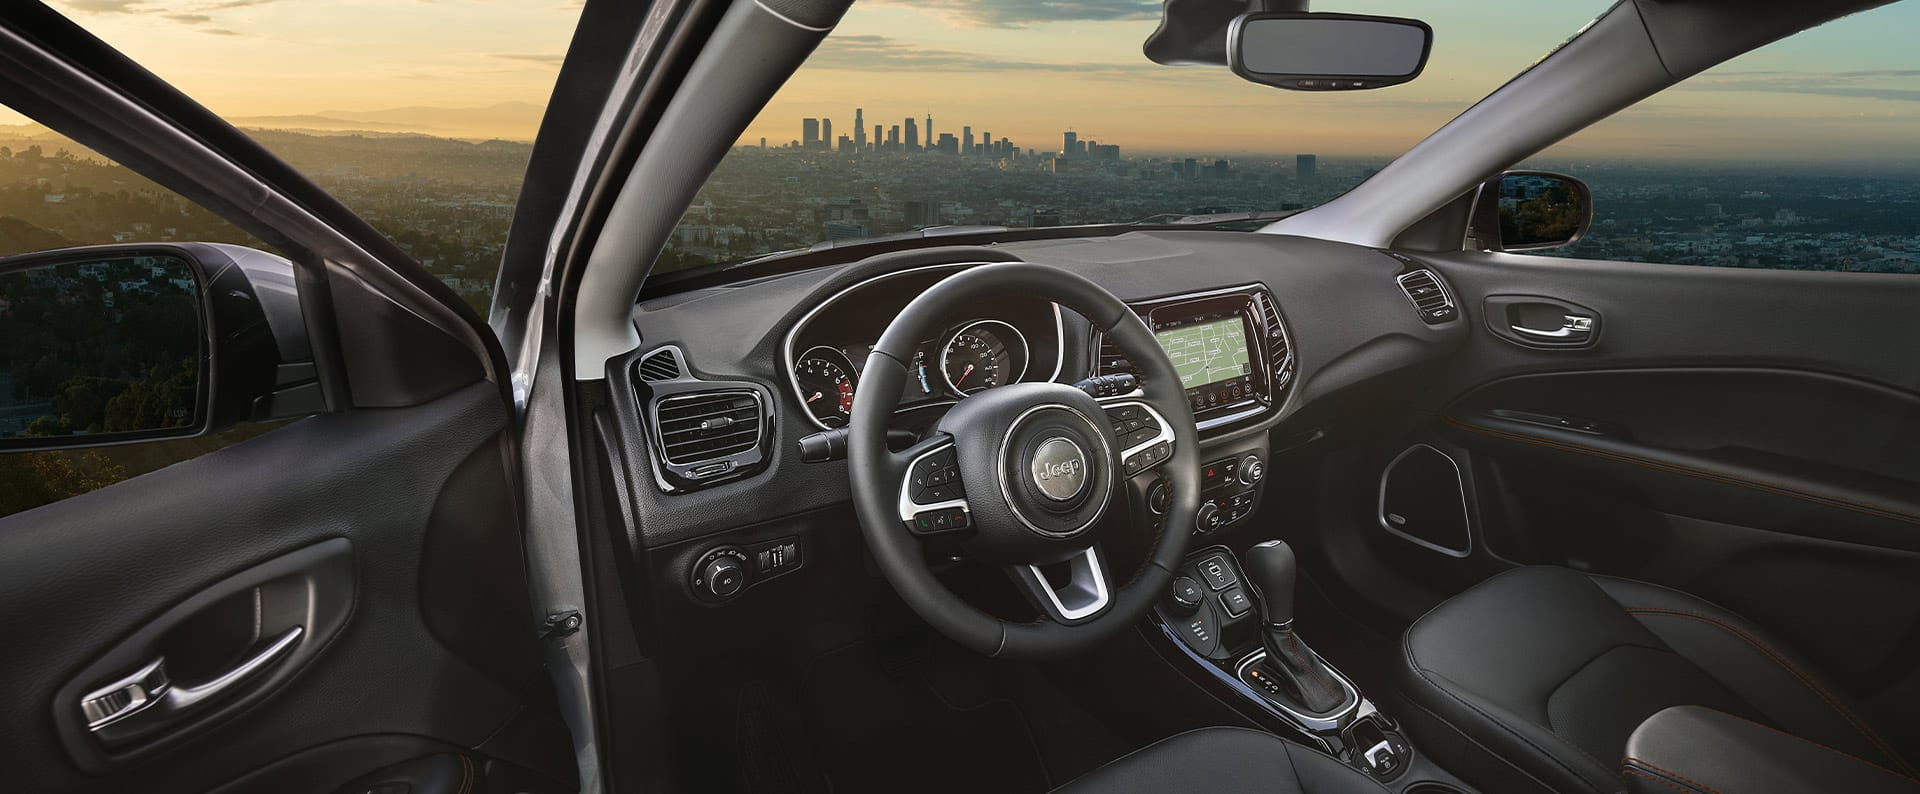 2021 Jeep Compass Interior Compact Suv With Style